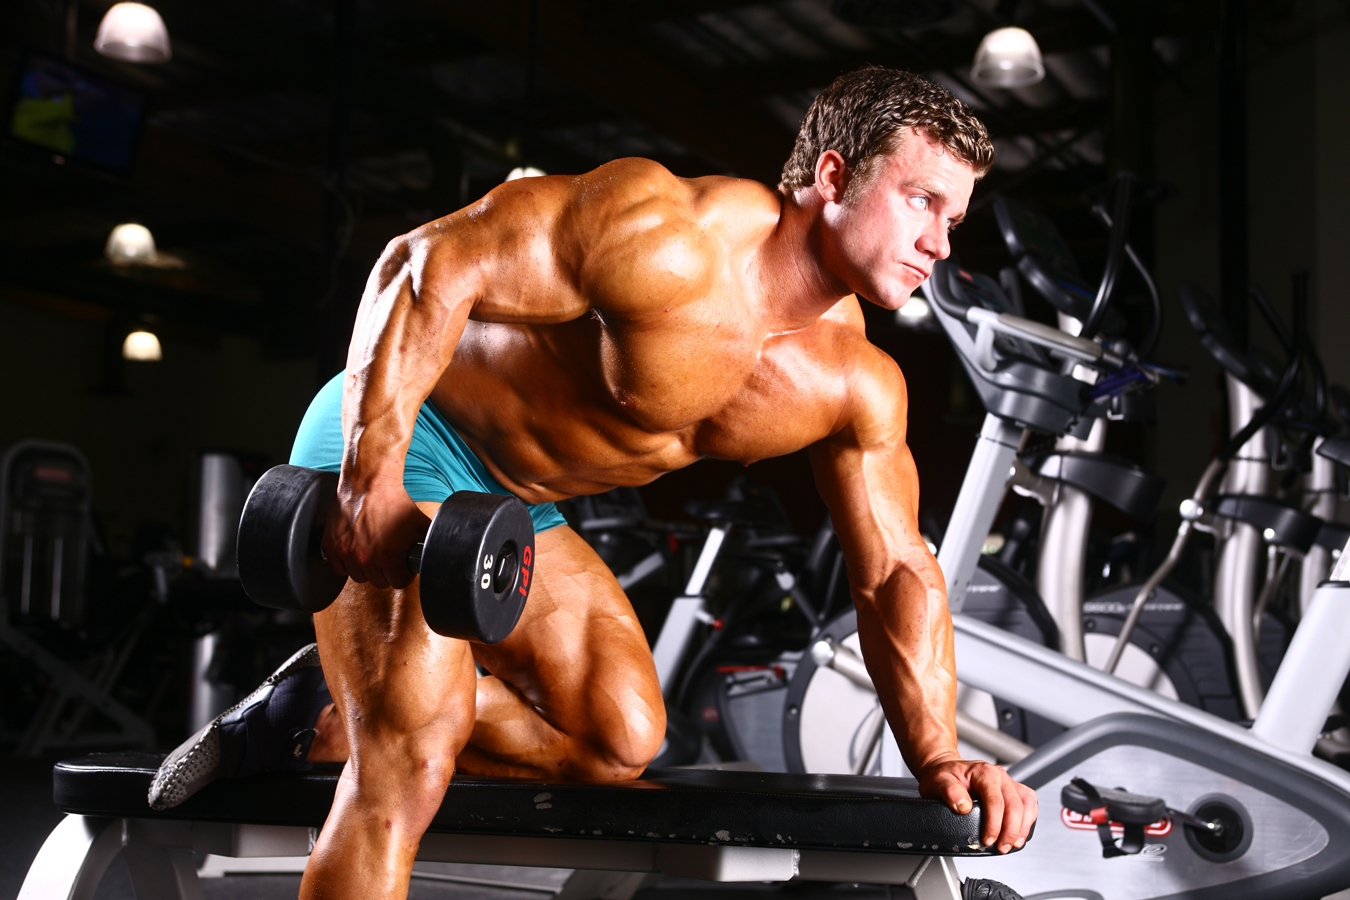 Biomechanical Perfection: Tricep Kickback